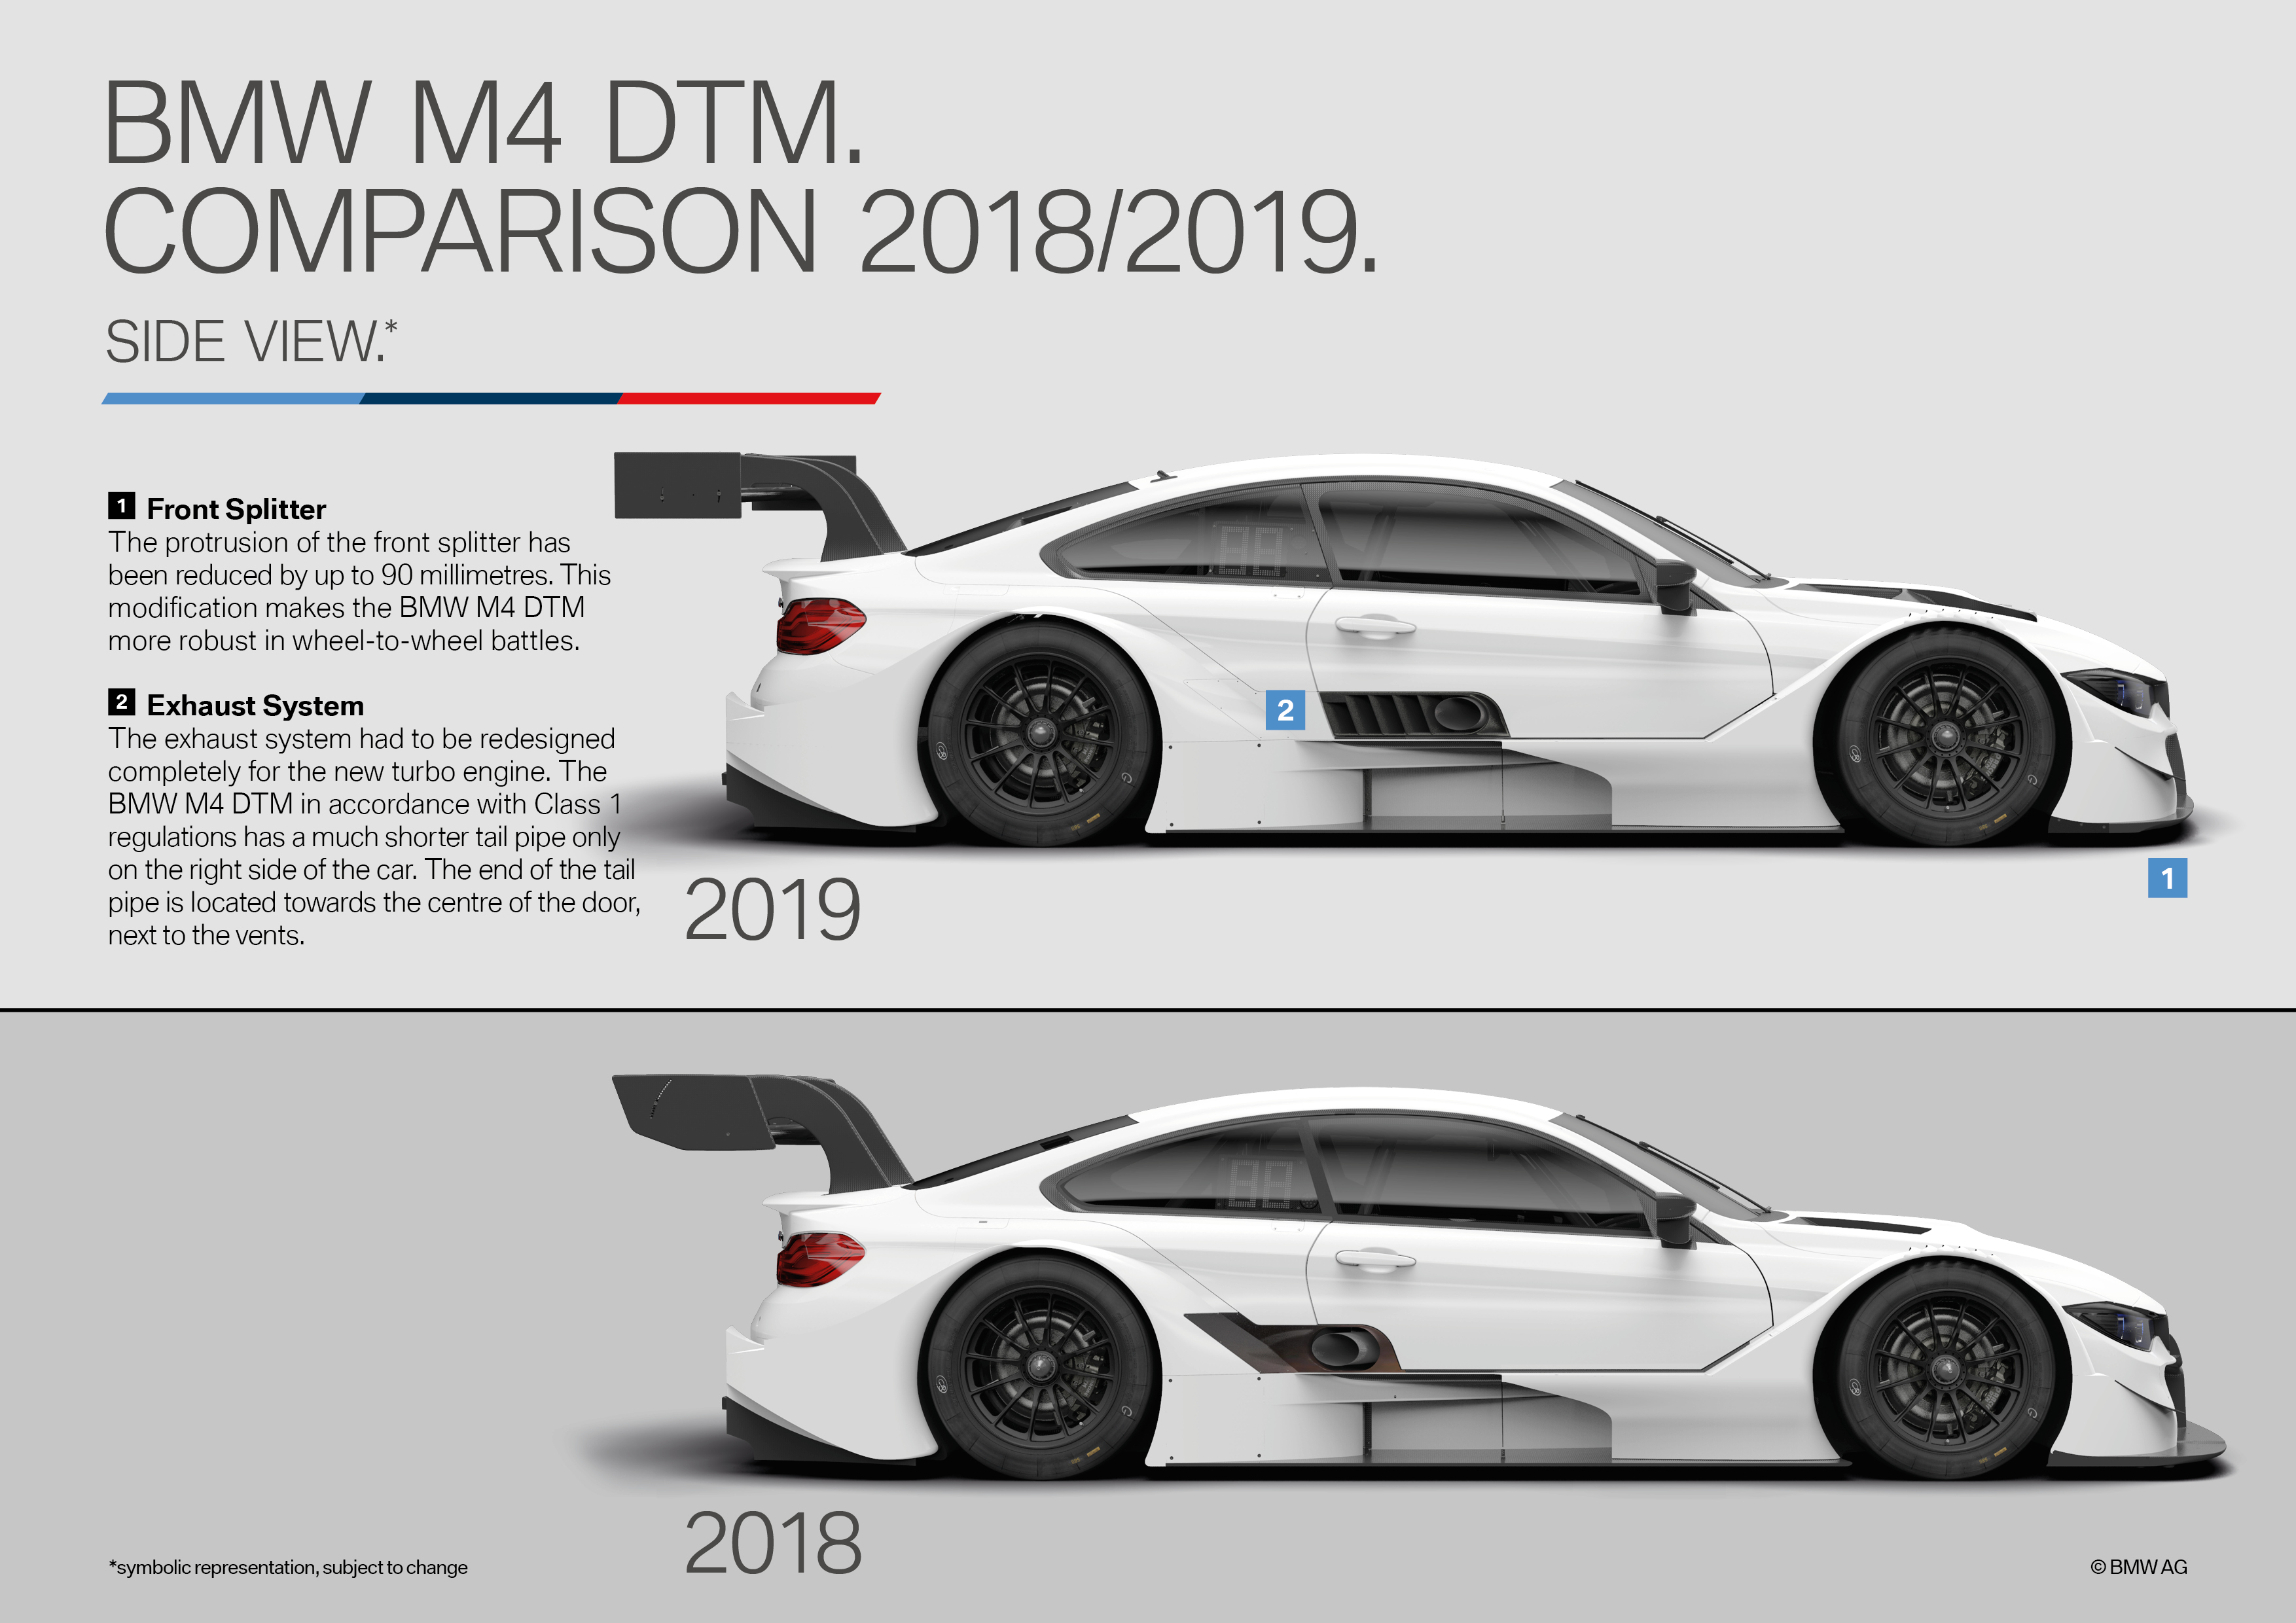 A Detailed Look At The New Bmw M4 Dtm For The Most Powerful Dtm Ever Endurance Info English Spoken